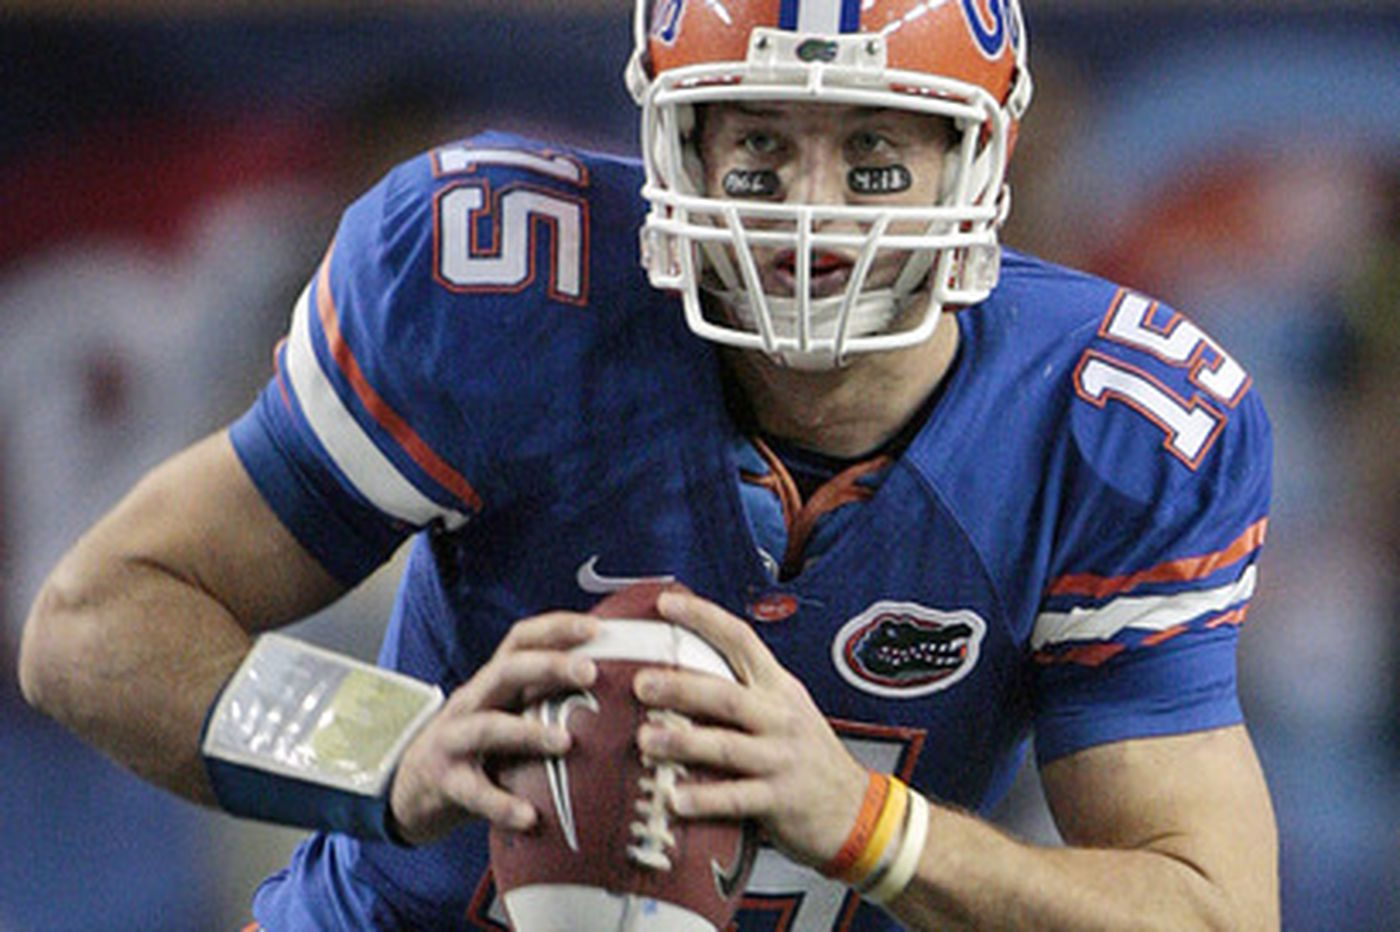 Maxwell goes to Gators' Tebow